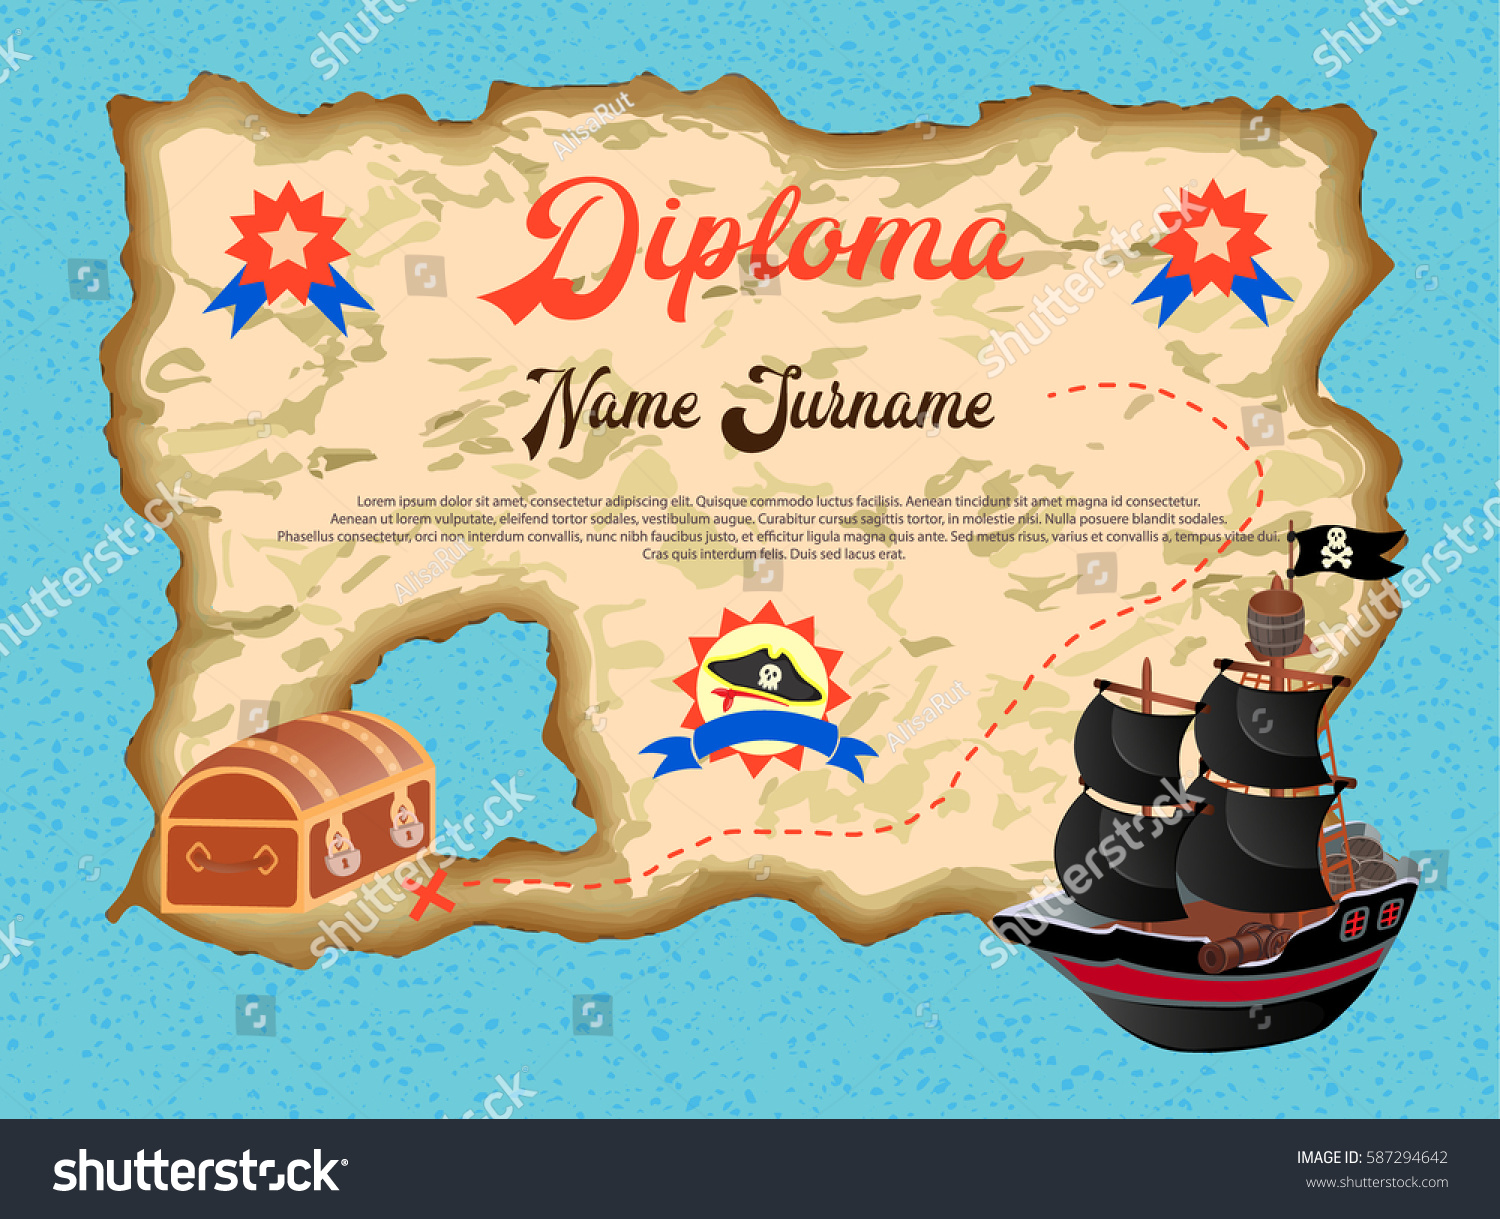 diploma winner quest search pirate treasure stock vector  diploma of the winner in the quest search of pirate treasure vector illustration